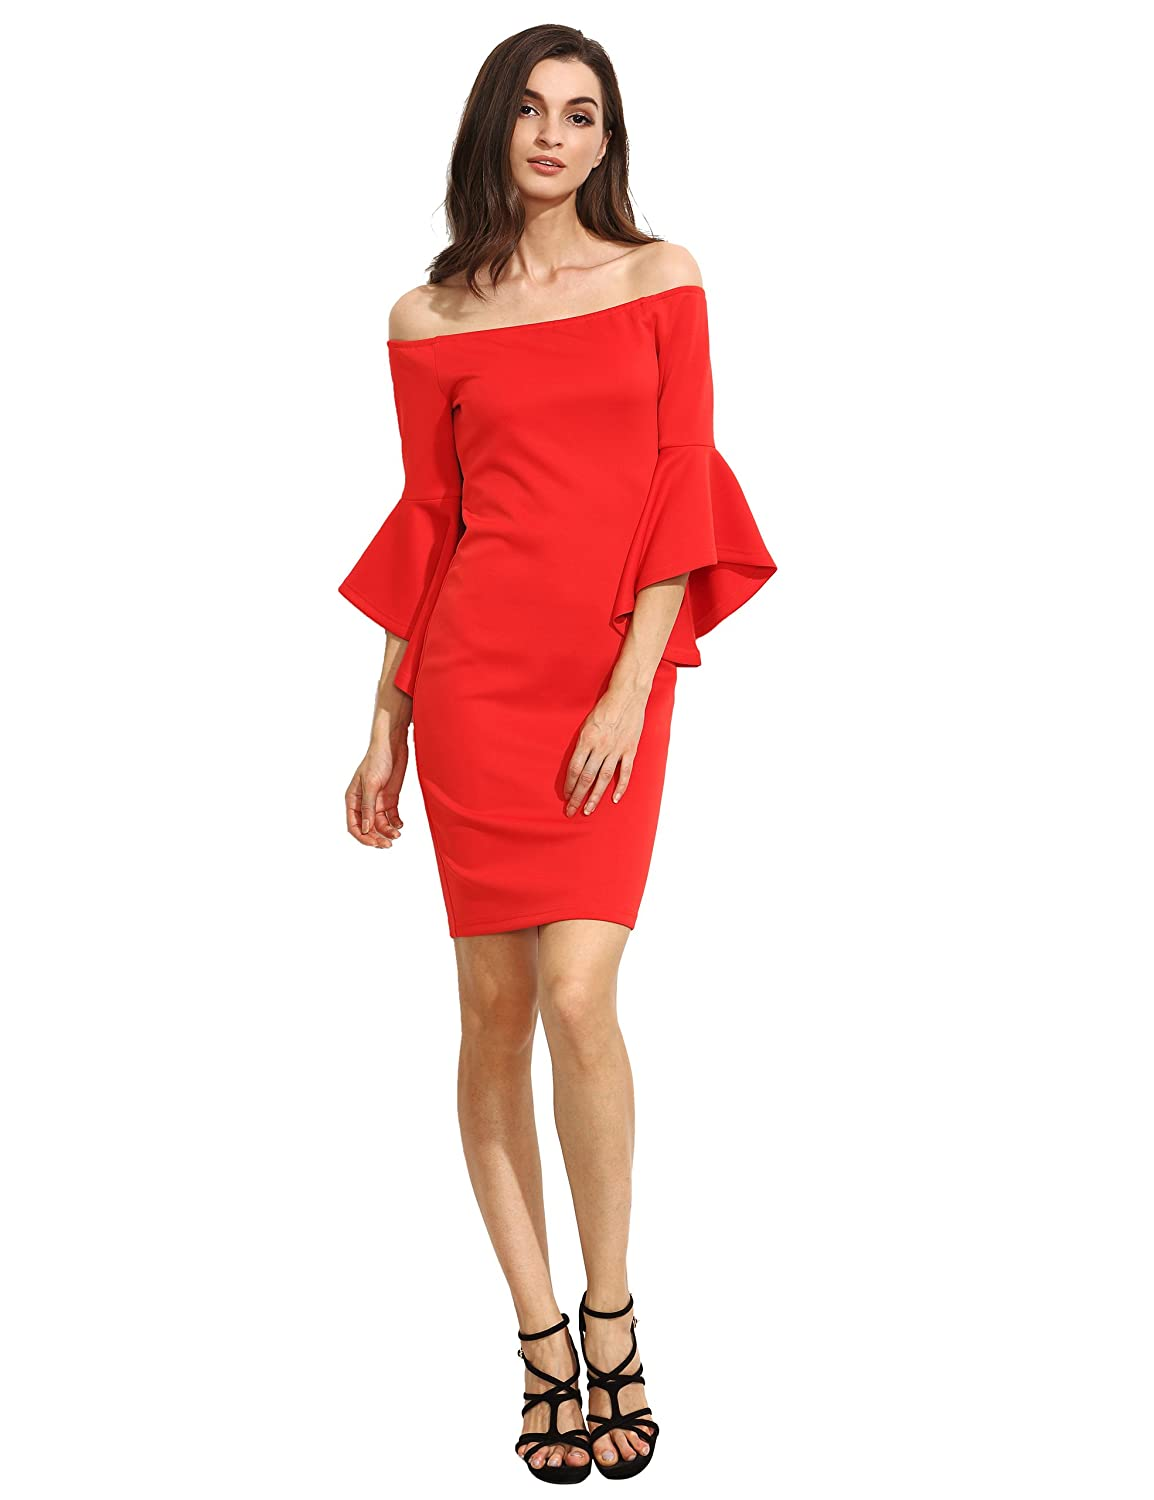 Amazon.com: Floerns Womens Ruffle Off Shoulder Bell Sleeves Knee Length Bodycon Pencil Dresses: Clothing